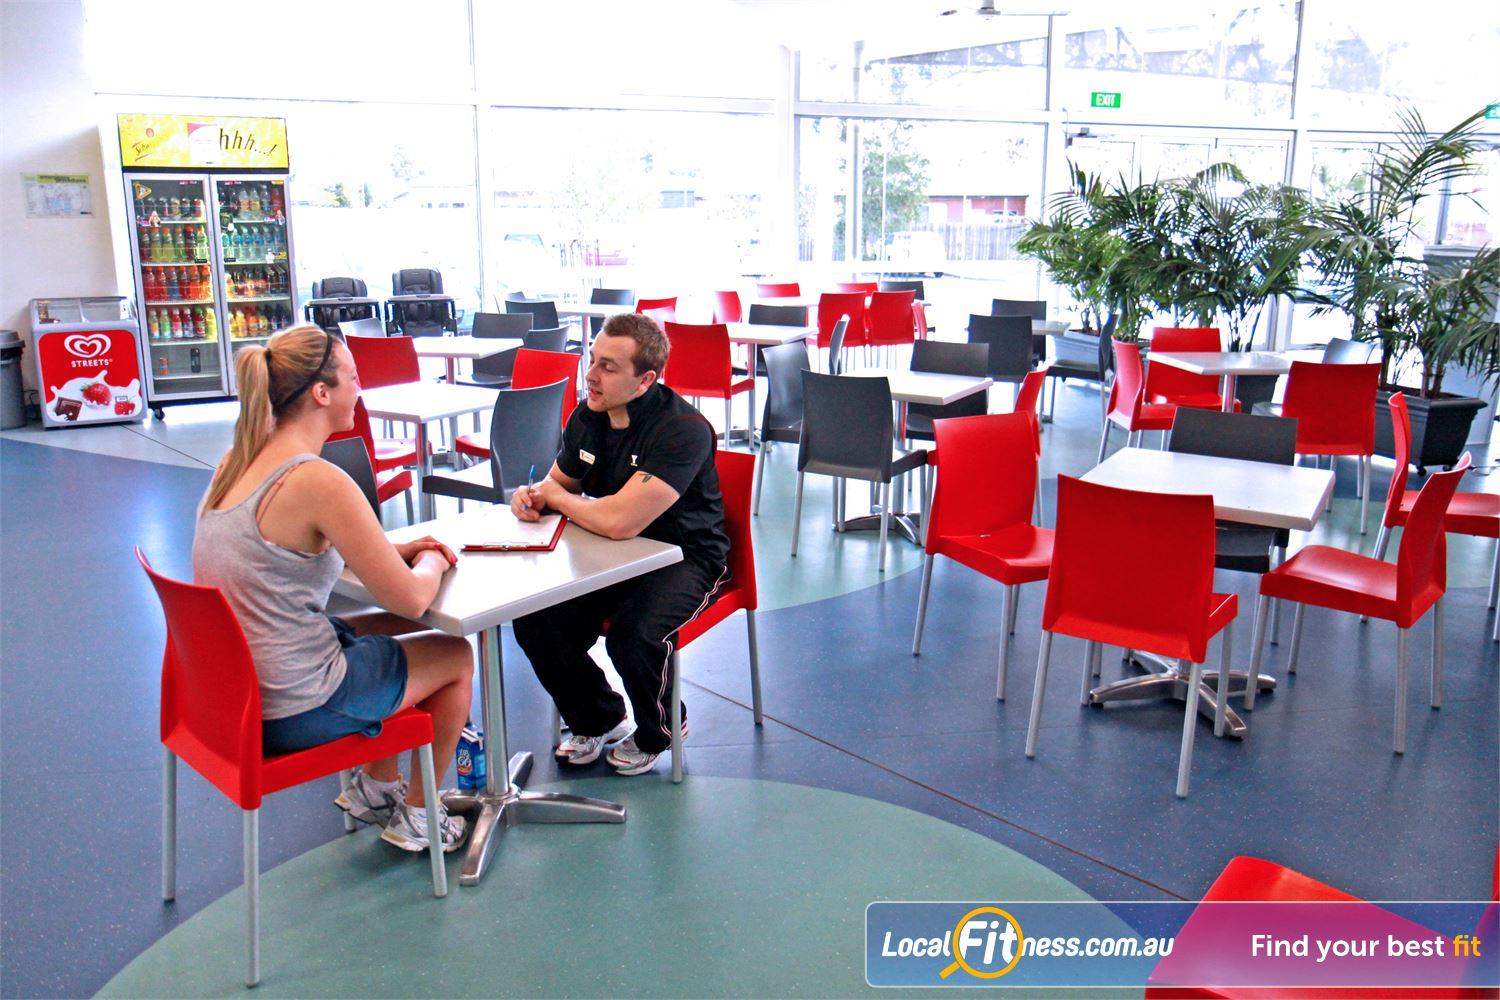 Ascot Vale Leisure Centre Ascot Vale 70-seat Ascot Vale cafe for members and guests.